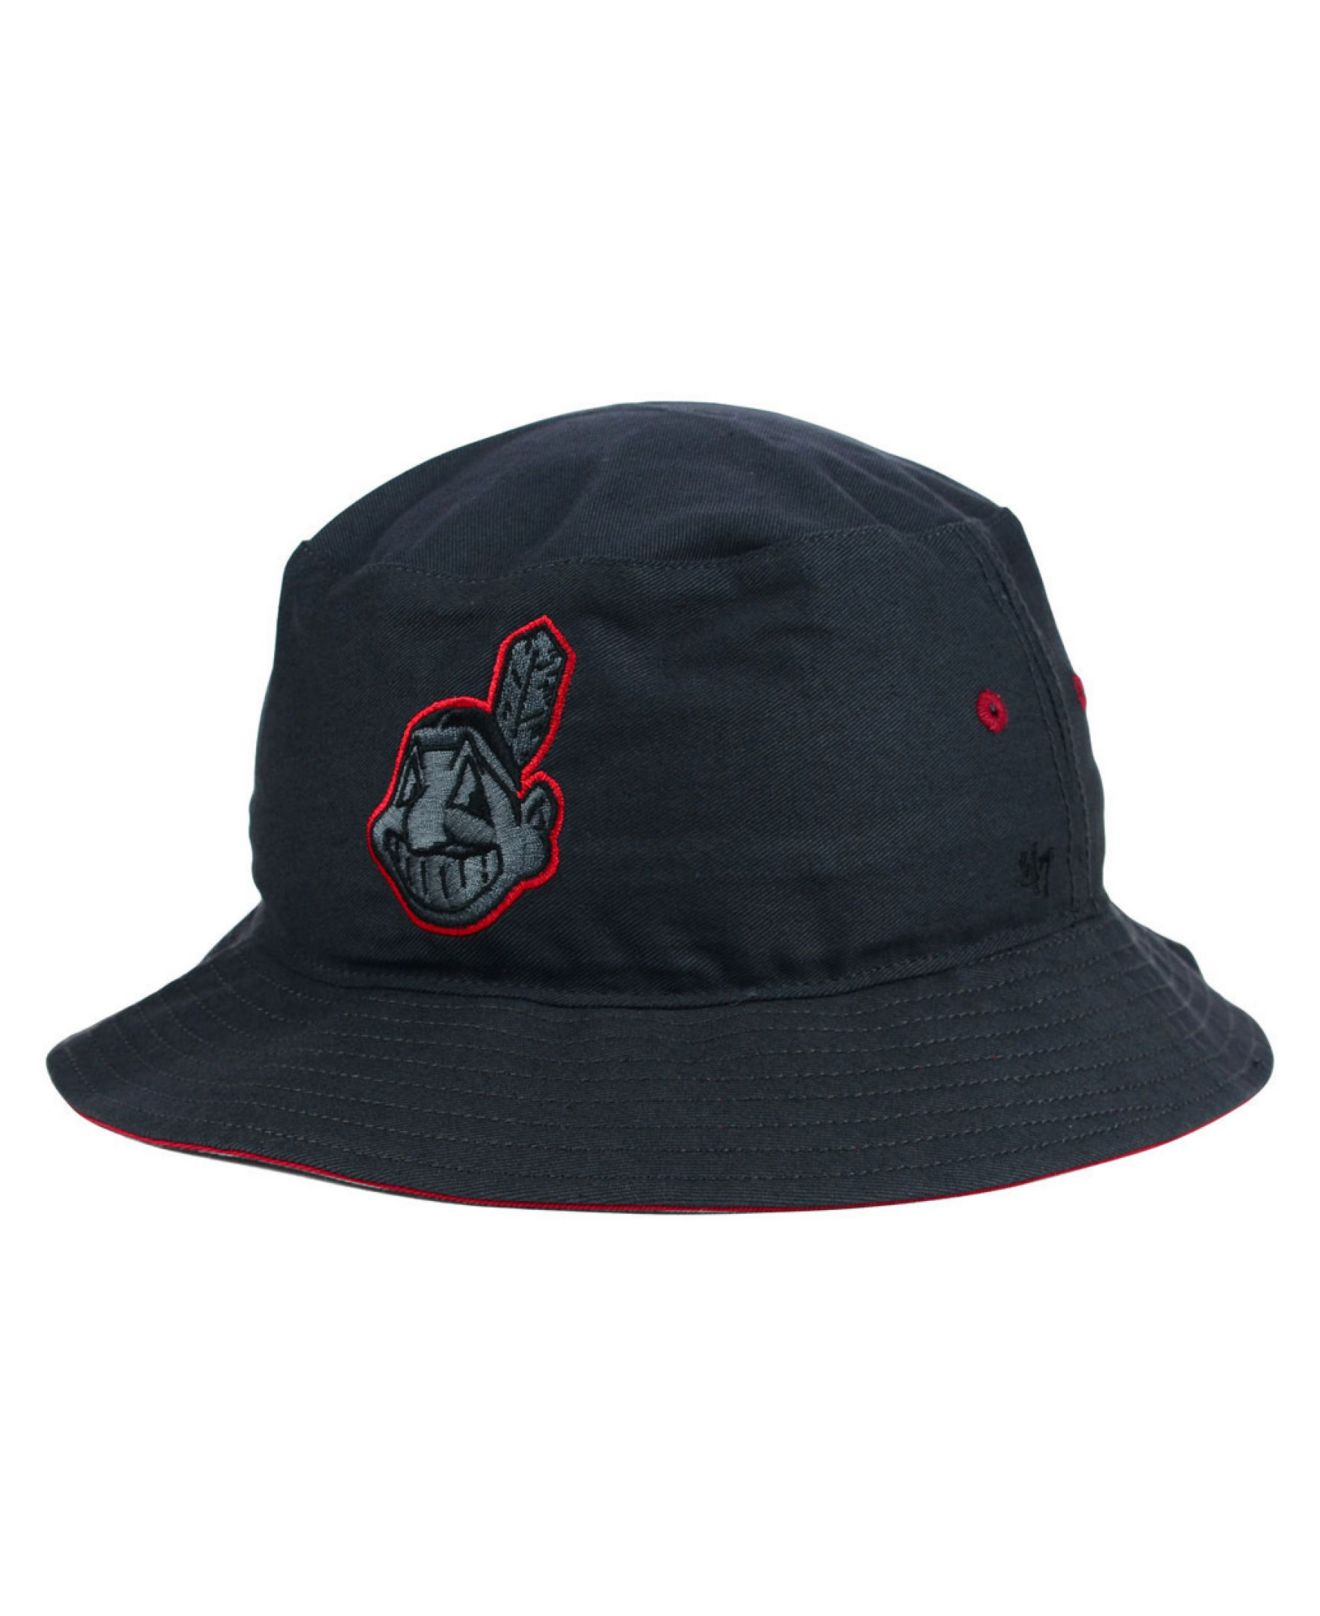 Lyst - 47 Brand Cleveland Indians Turbo Bucket Hat in Gray for Men 26a4daa9f0c